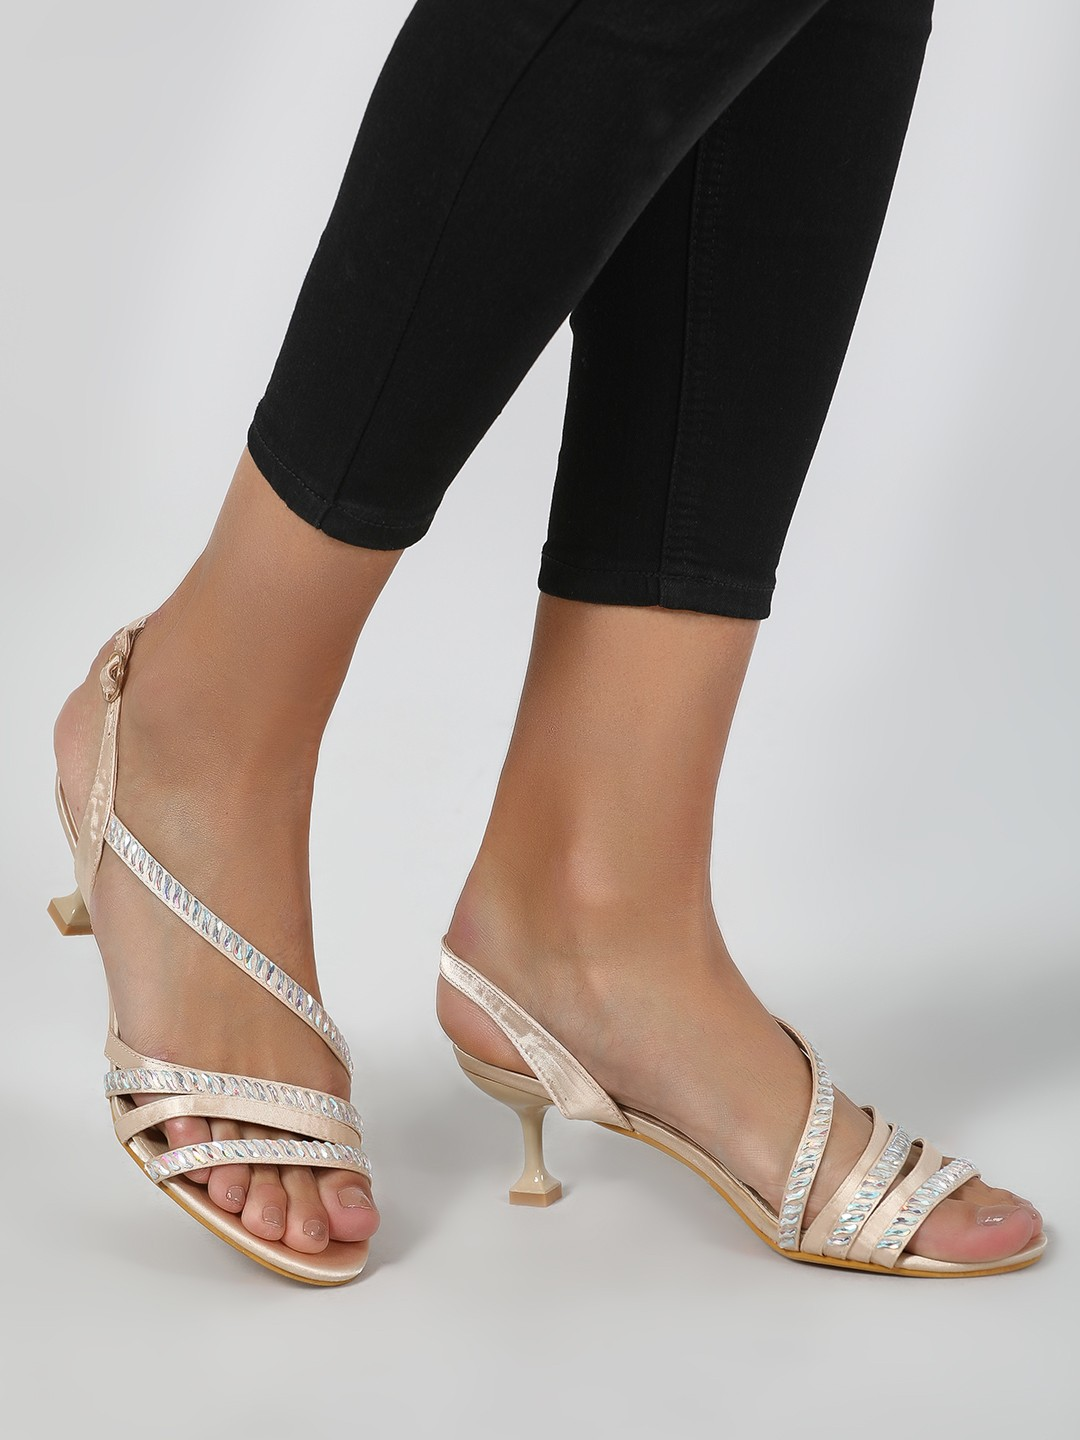 Intoto Gold Holographic Multi-Strap Kitten Heels 1